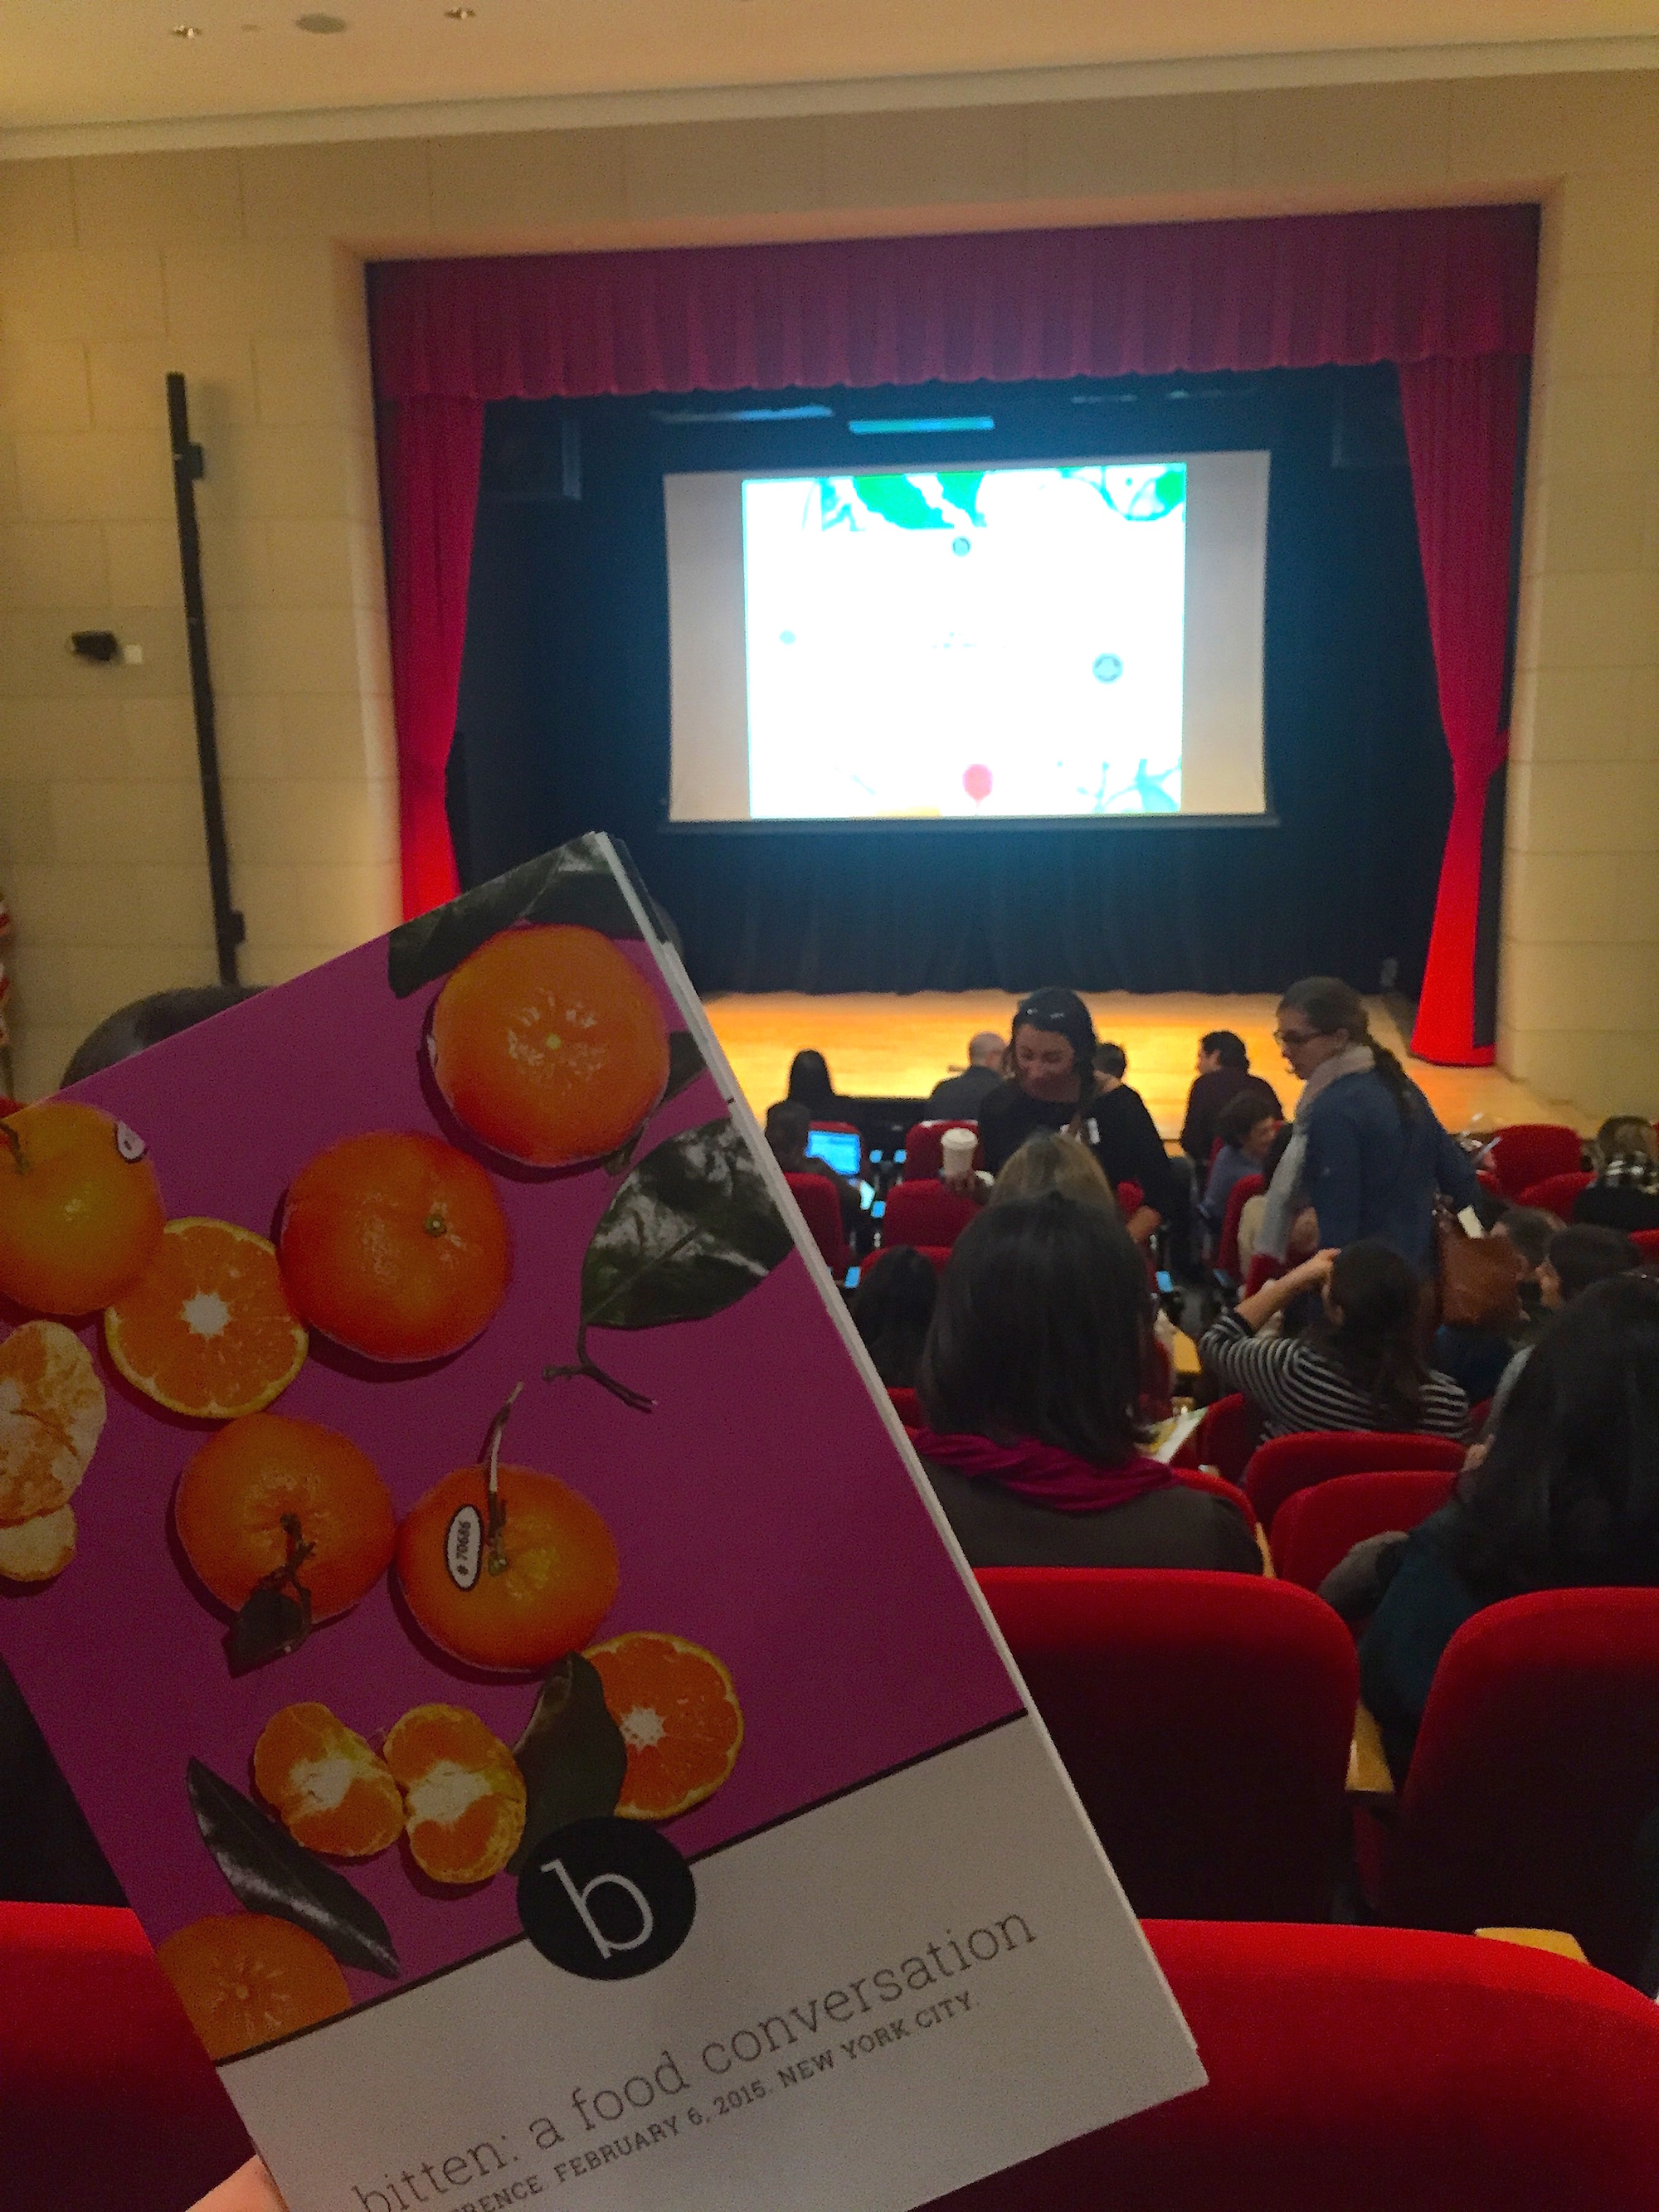 bitten: a food conversation, at Scholastic Auditorium, Feb. 6, 2015